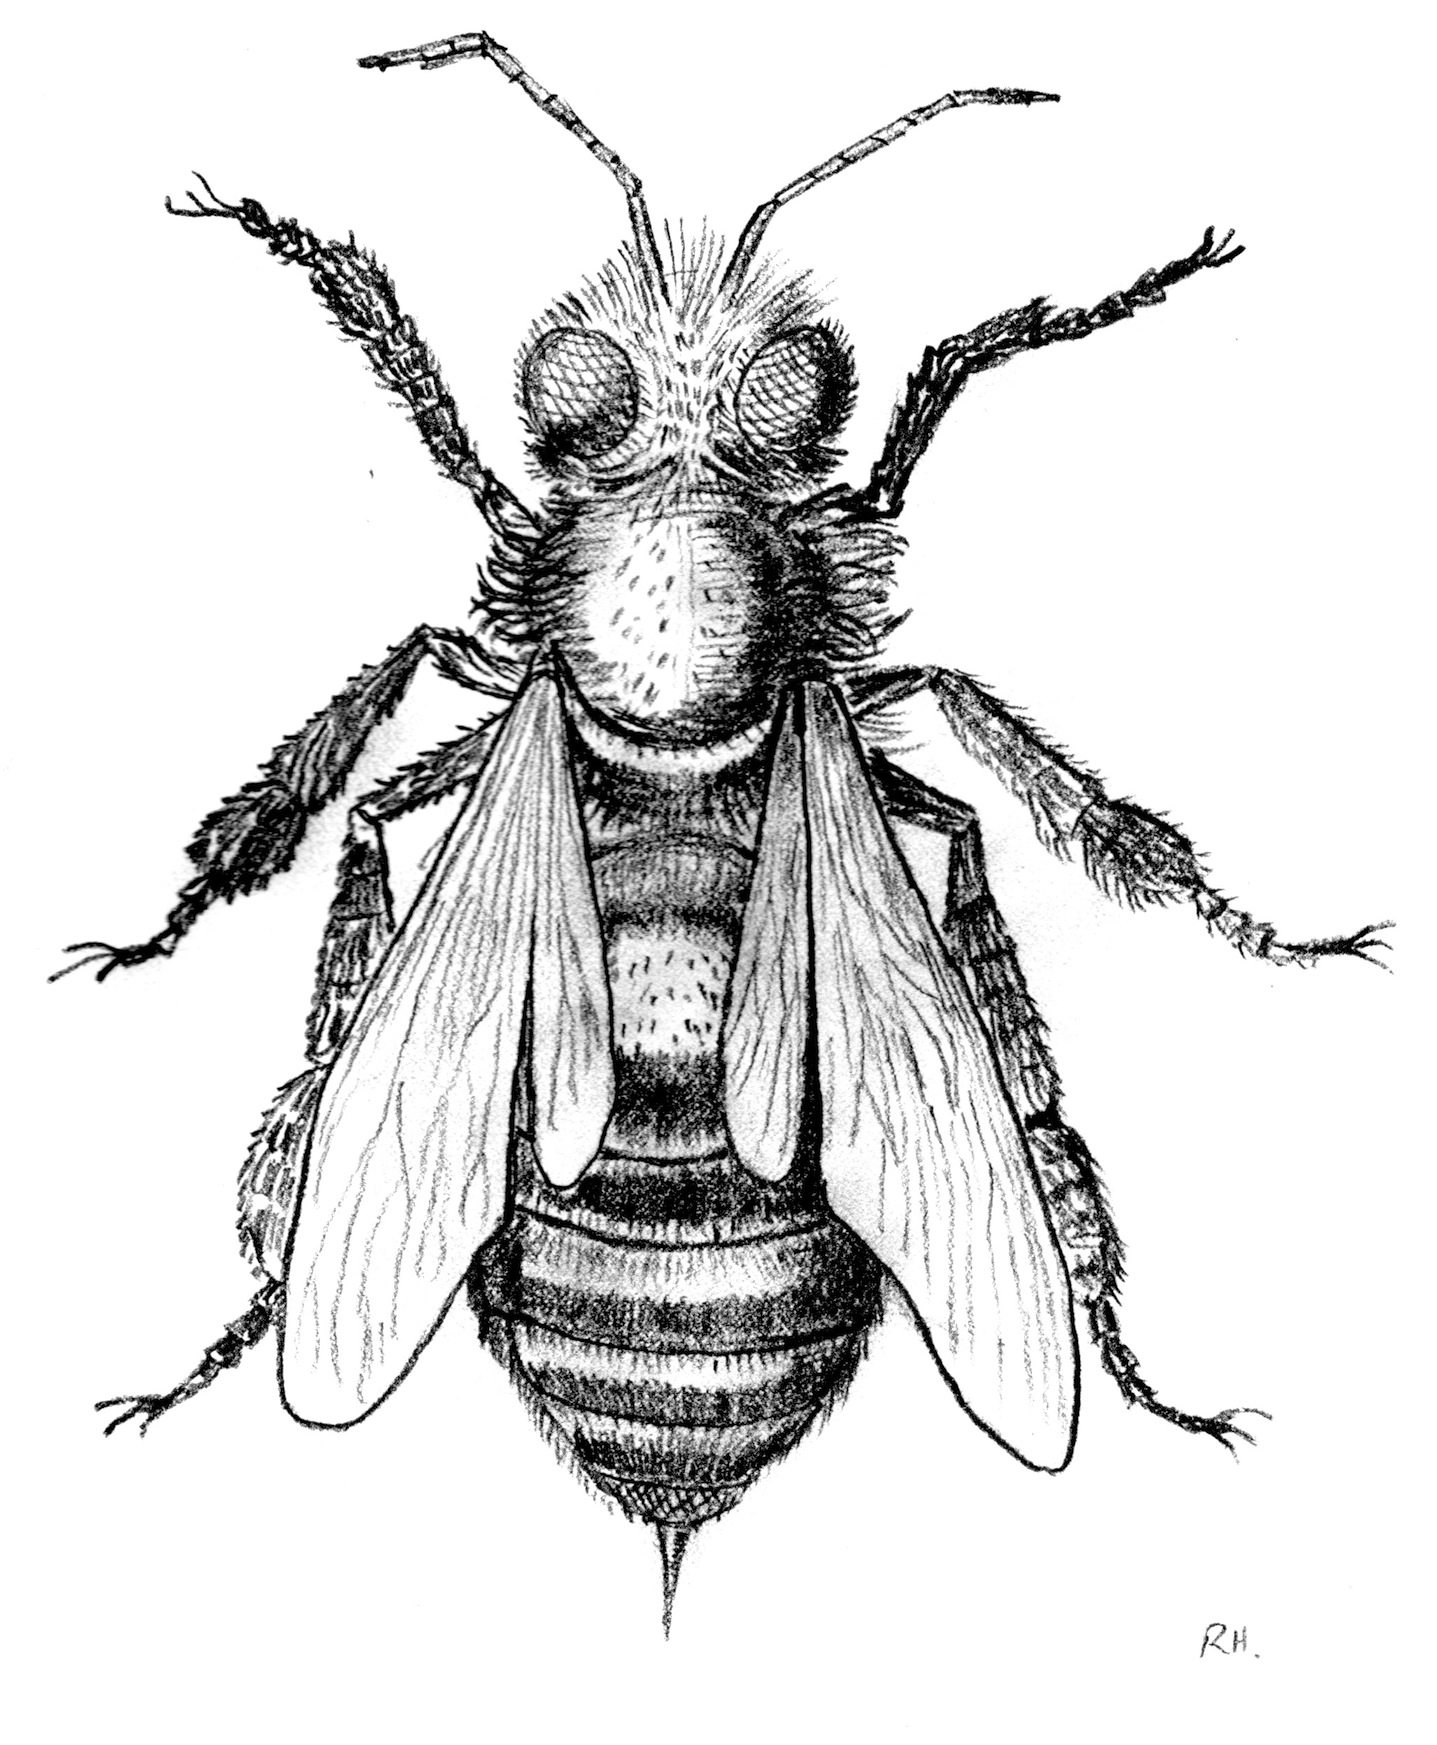 Note My Bee Picture Is Based On Stellutis The First Ever Microscope Drawing